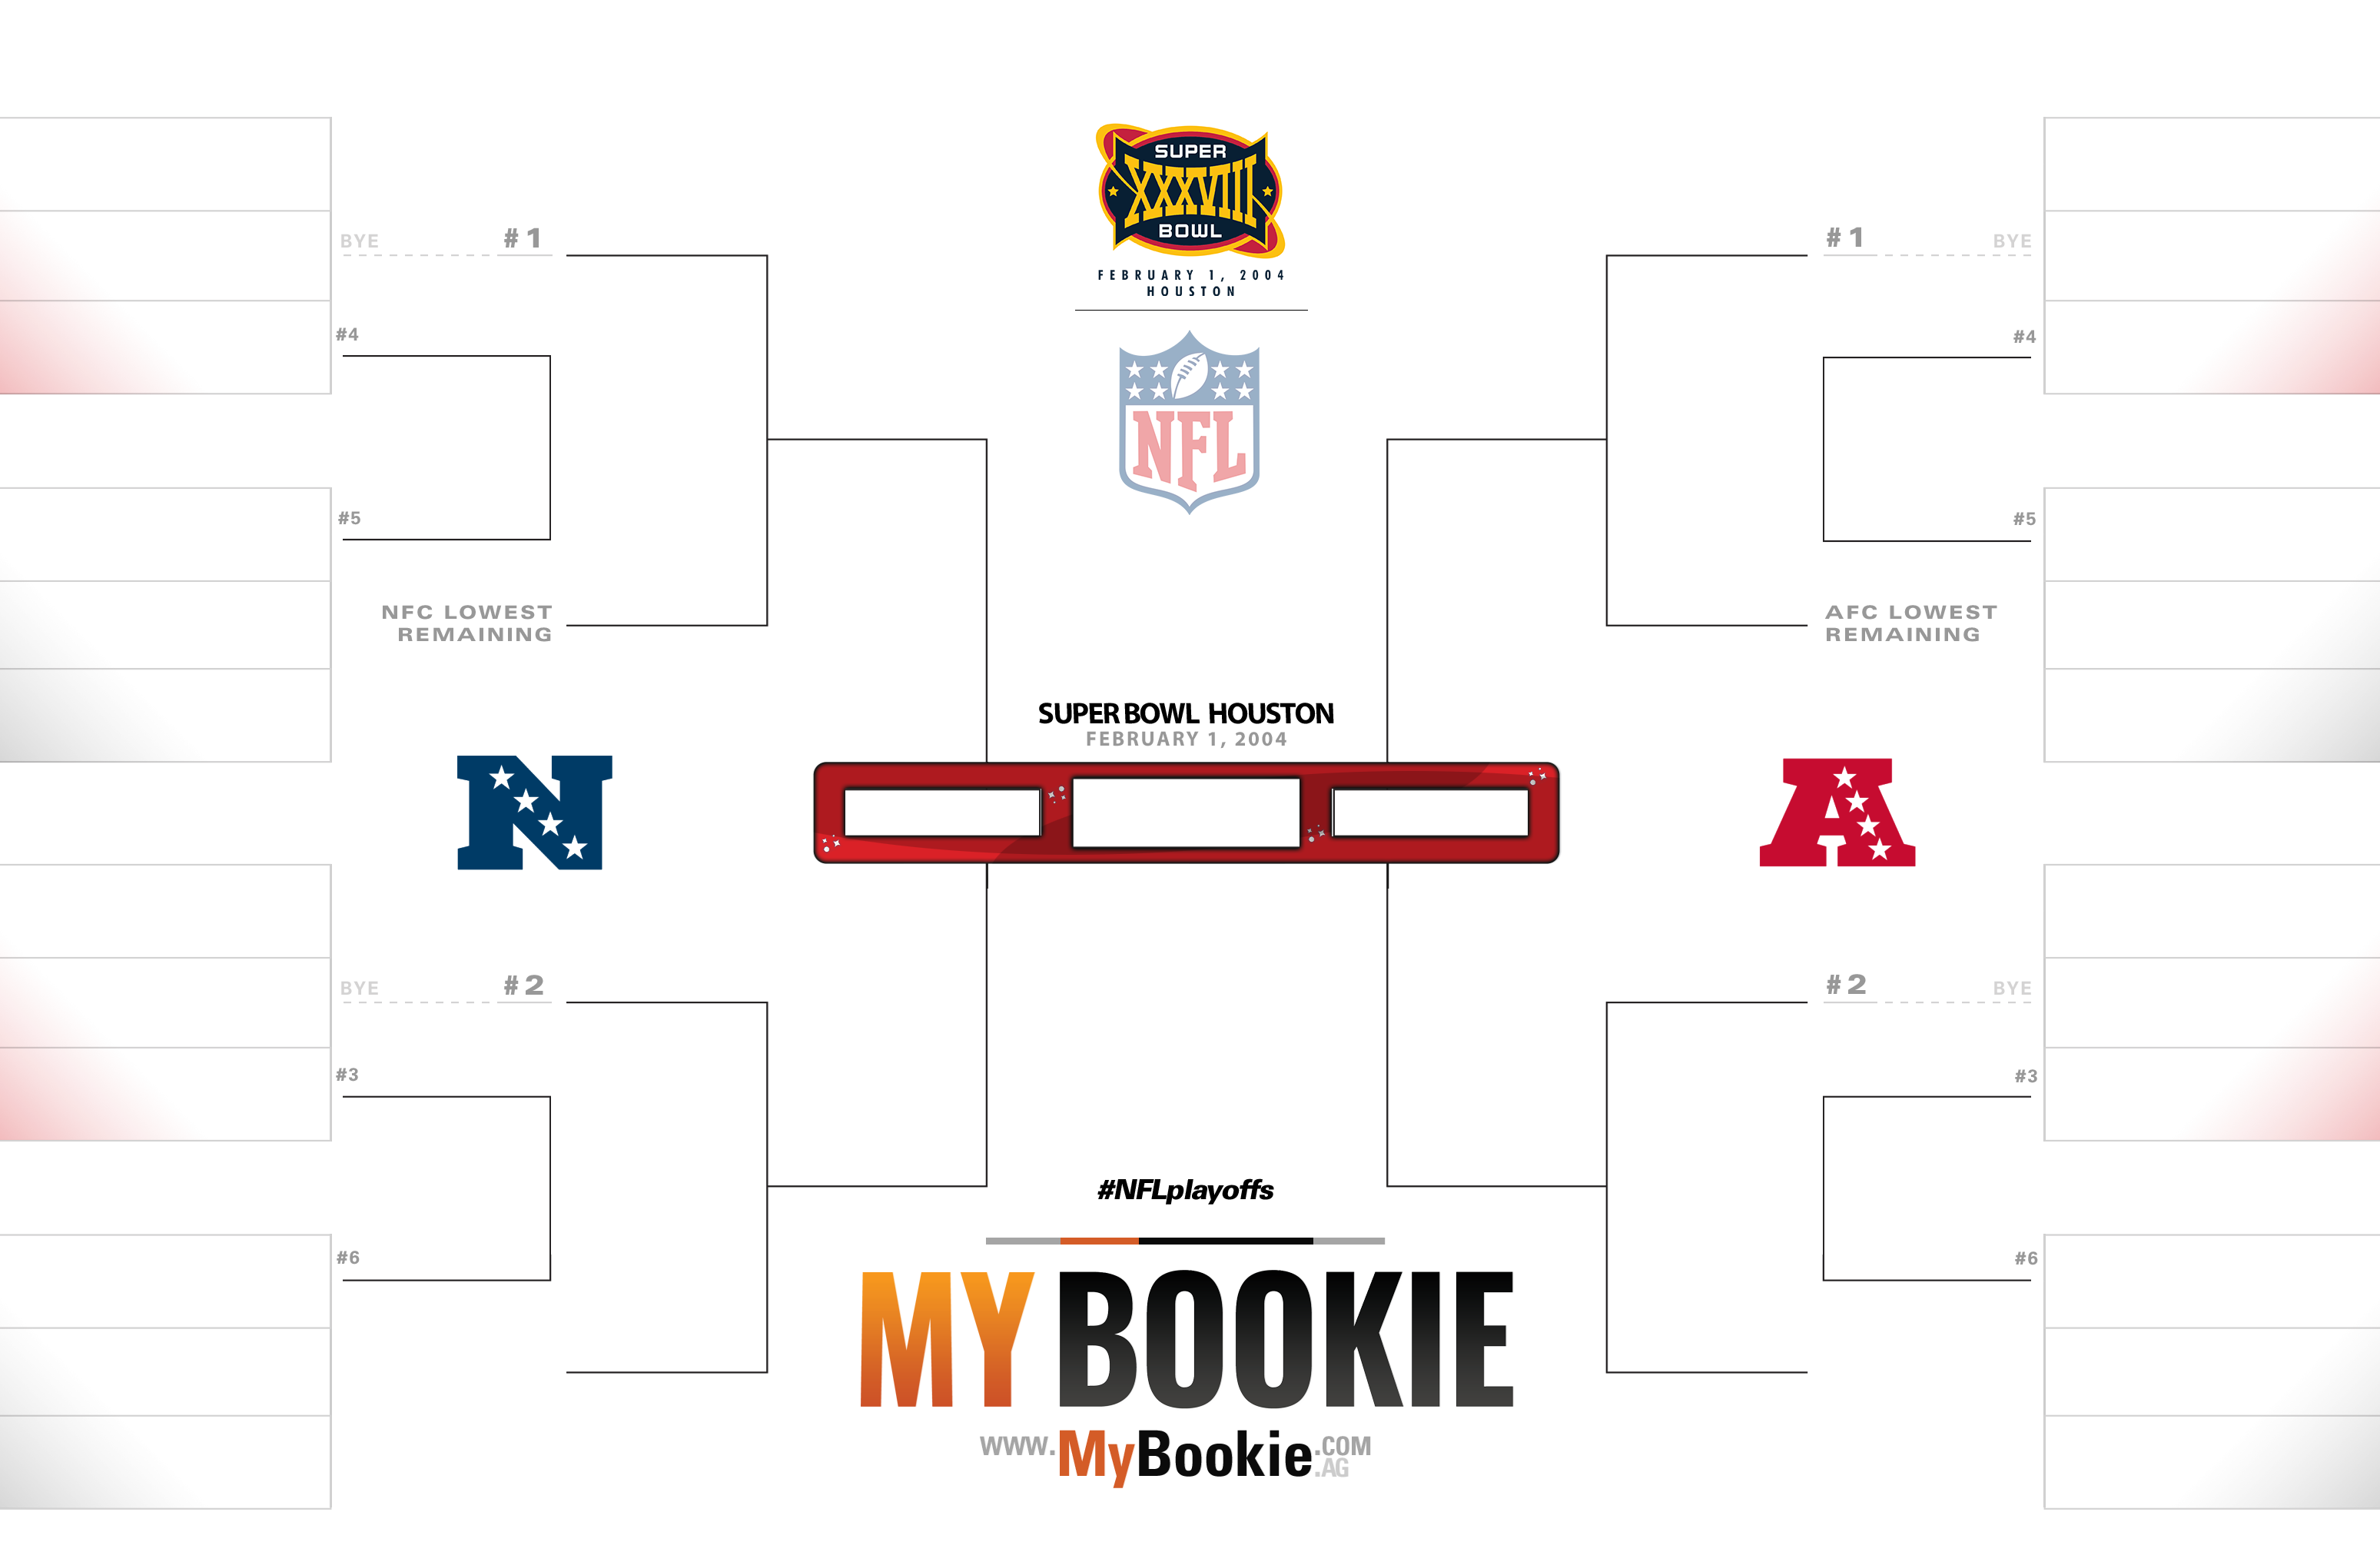 NFL Playoffs / Superbowl 2004 Printable Bracket